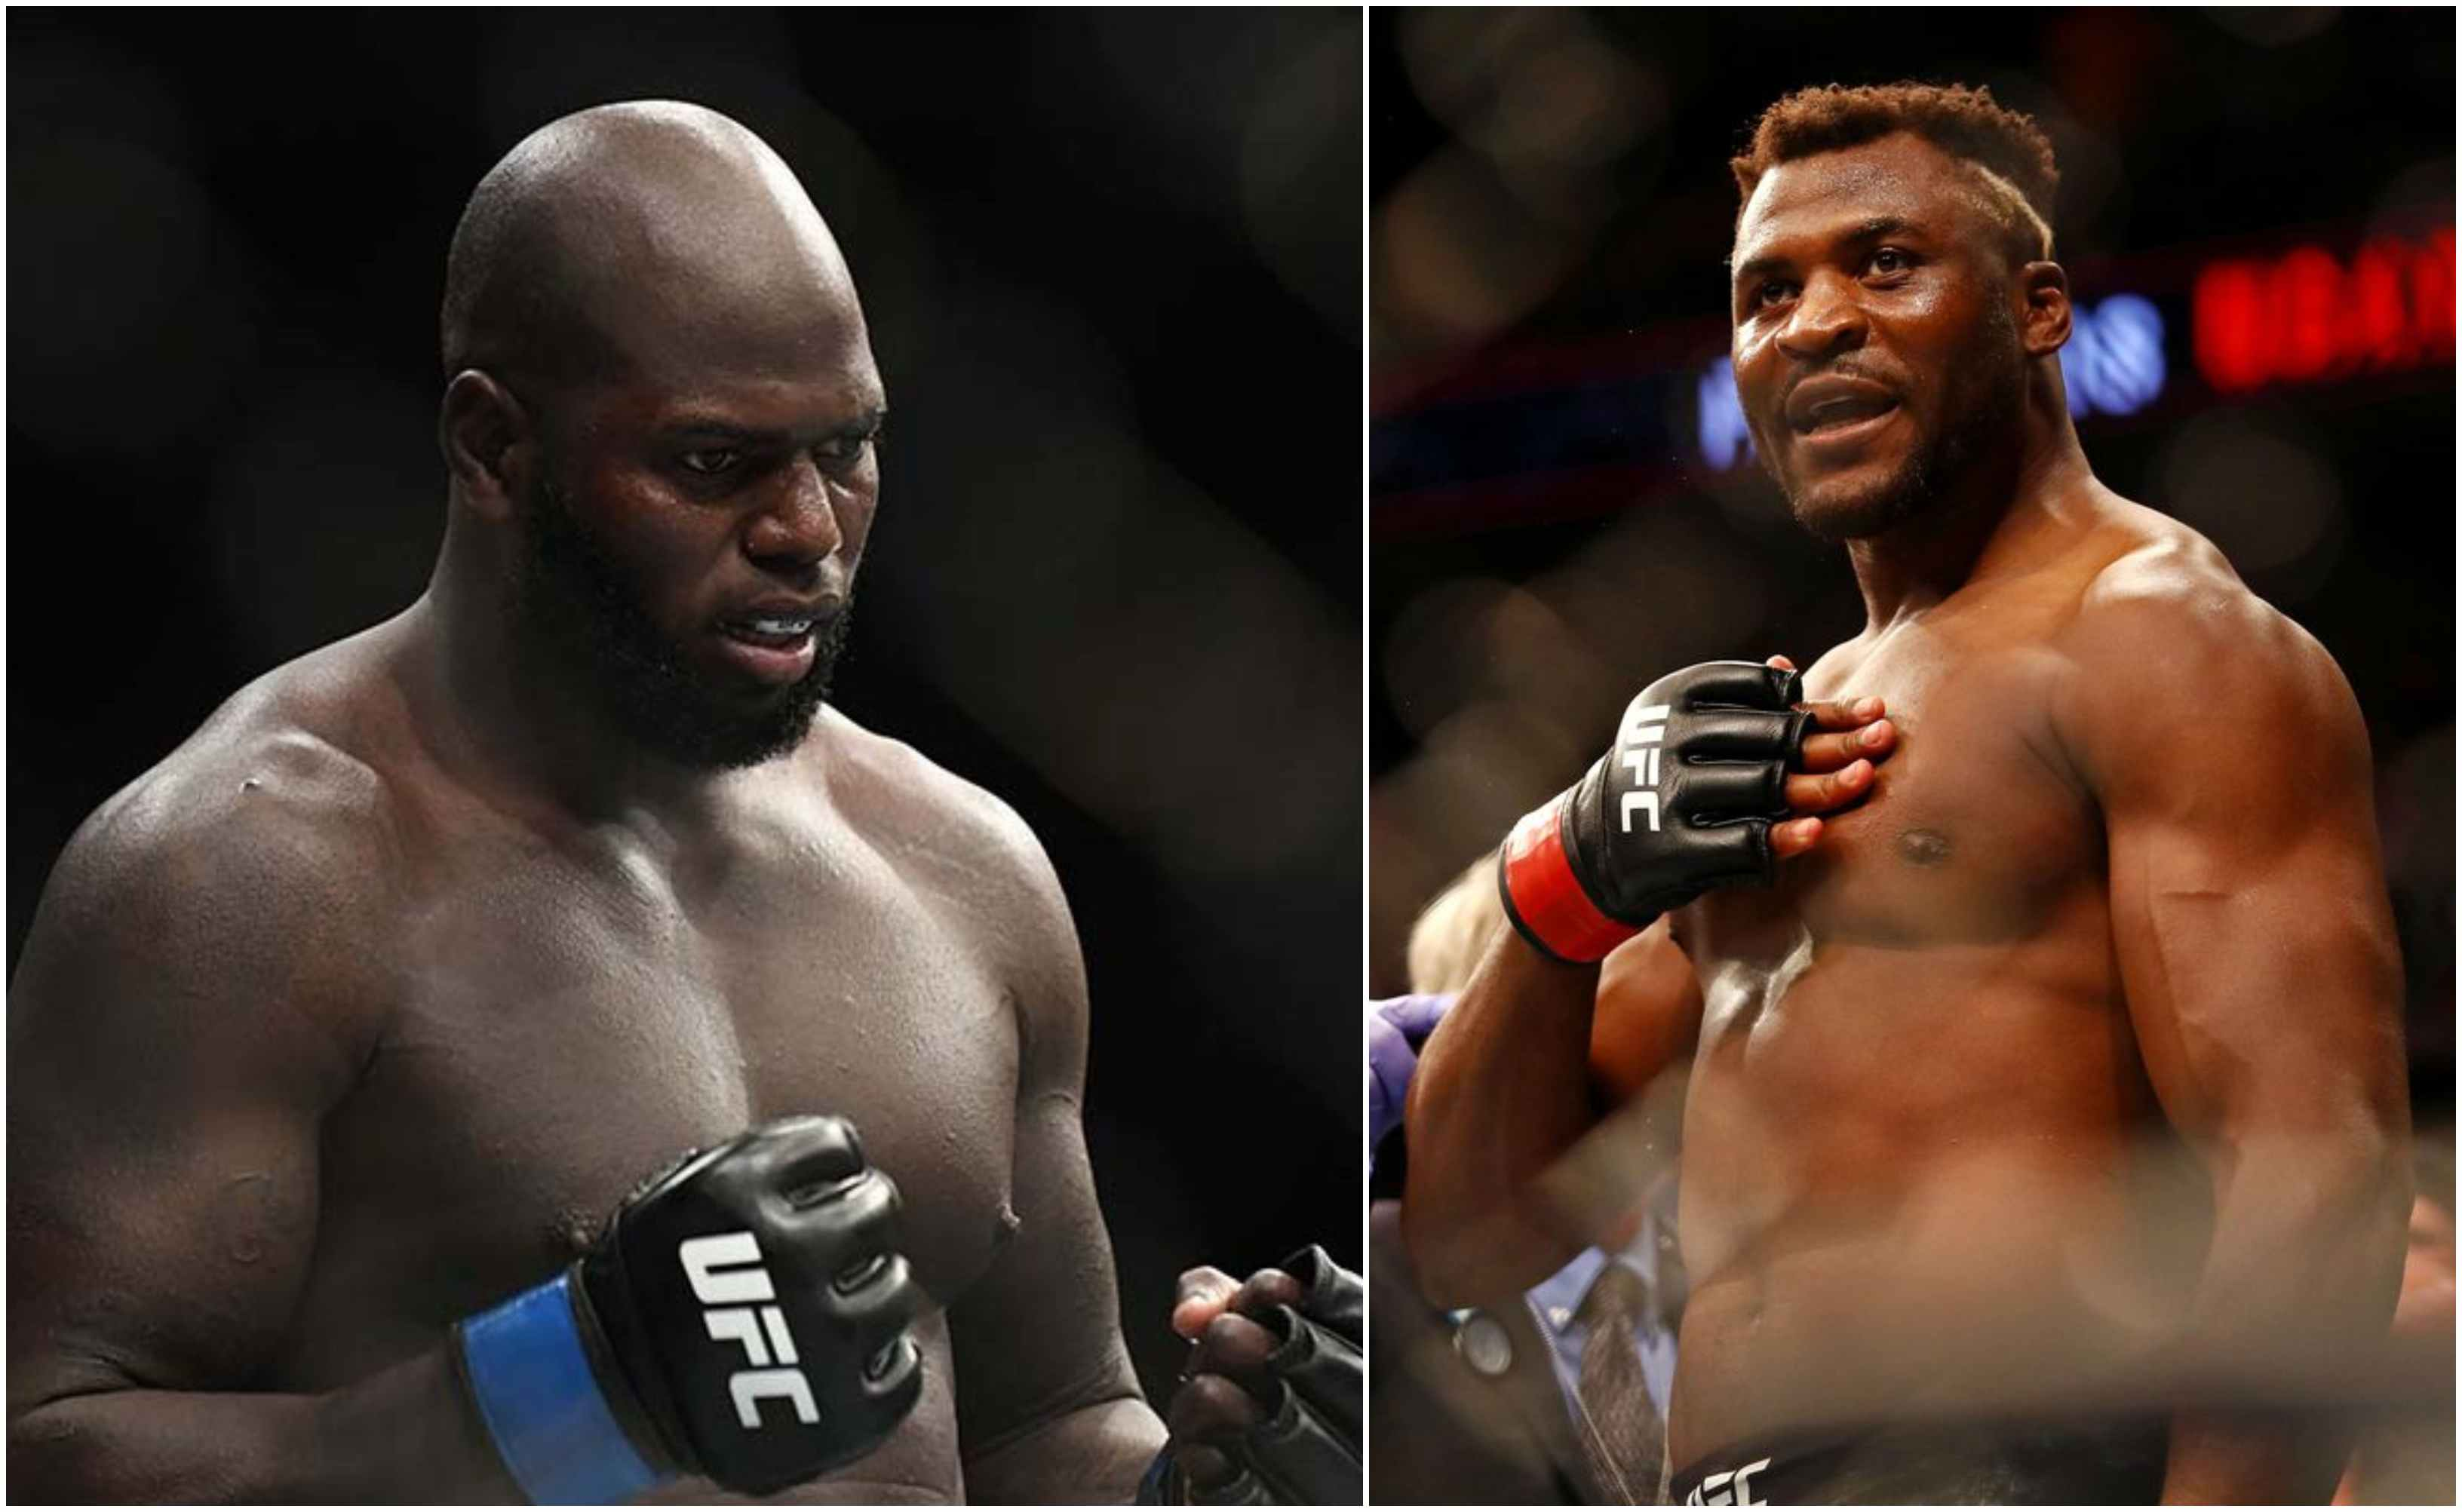 Jairzinho Rozenstruik targets 'scary guy' Francis Ngannou if he manages to beat Alistair Overeem - Jairzinho